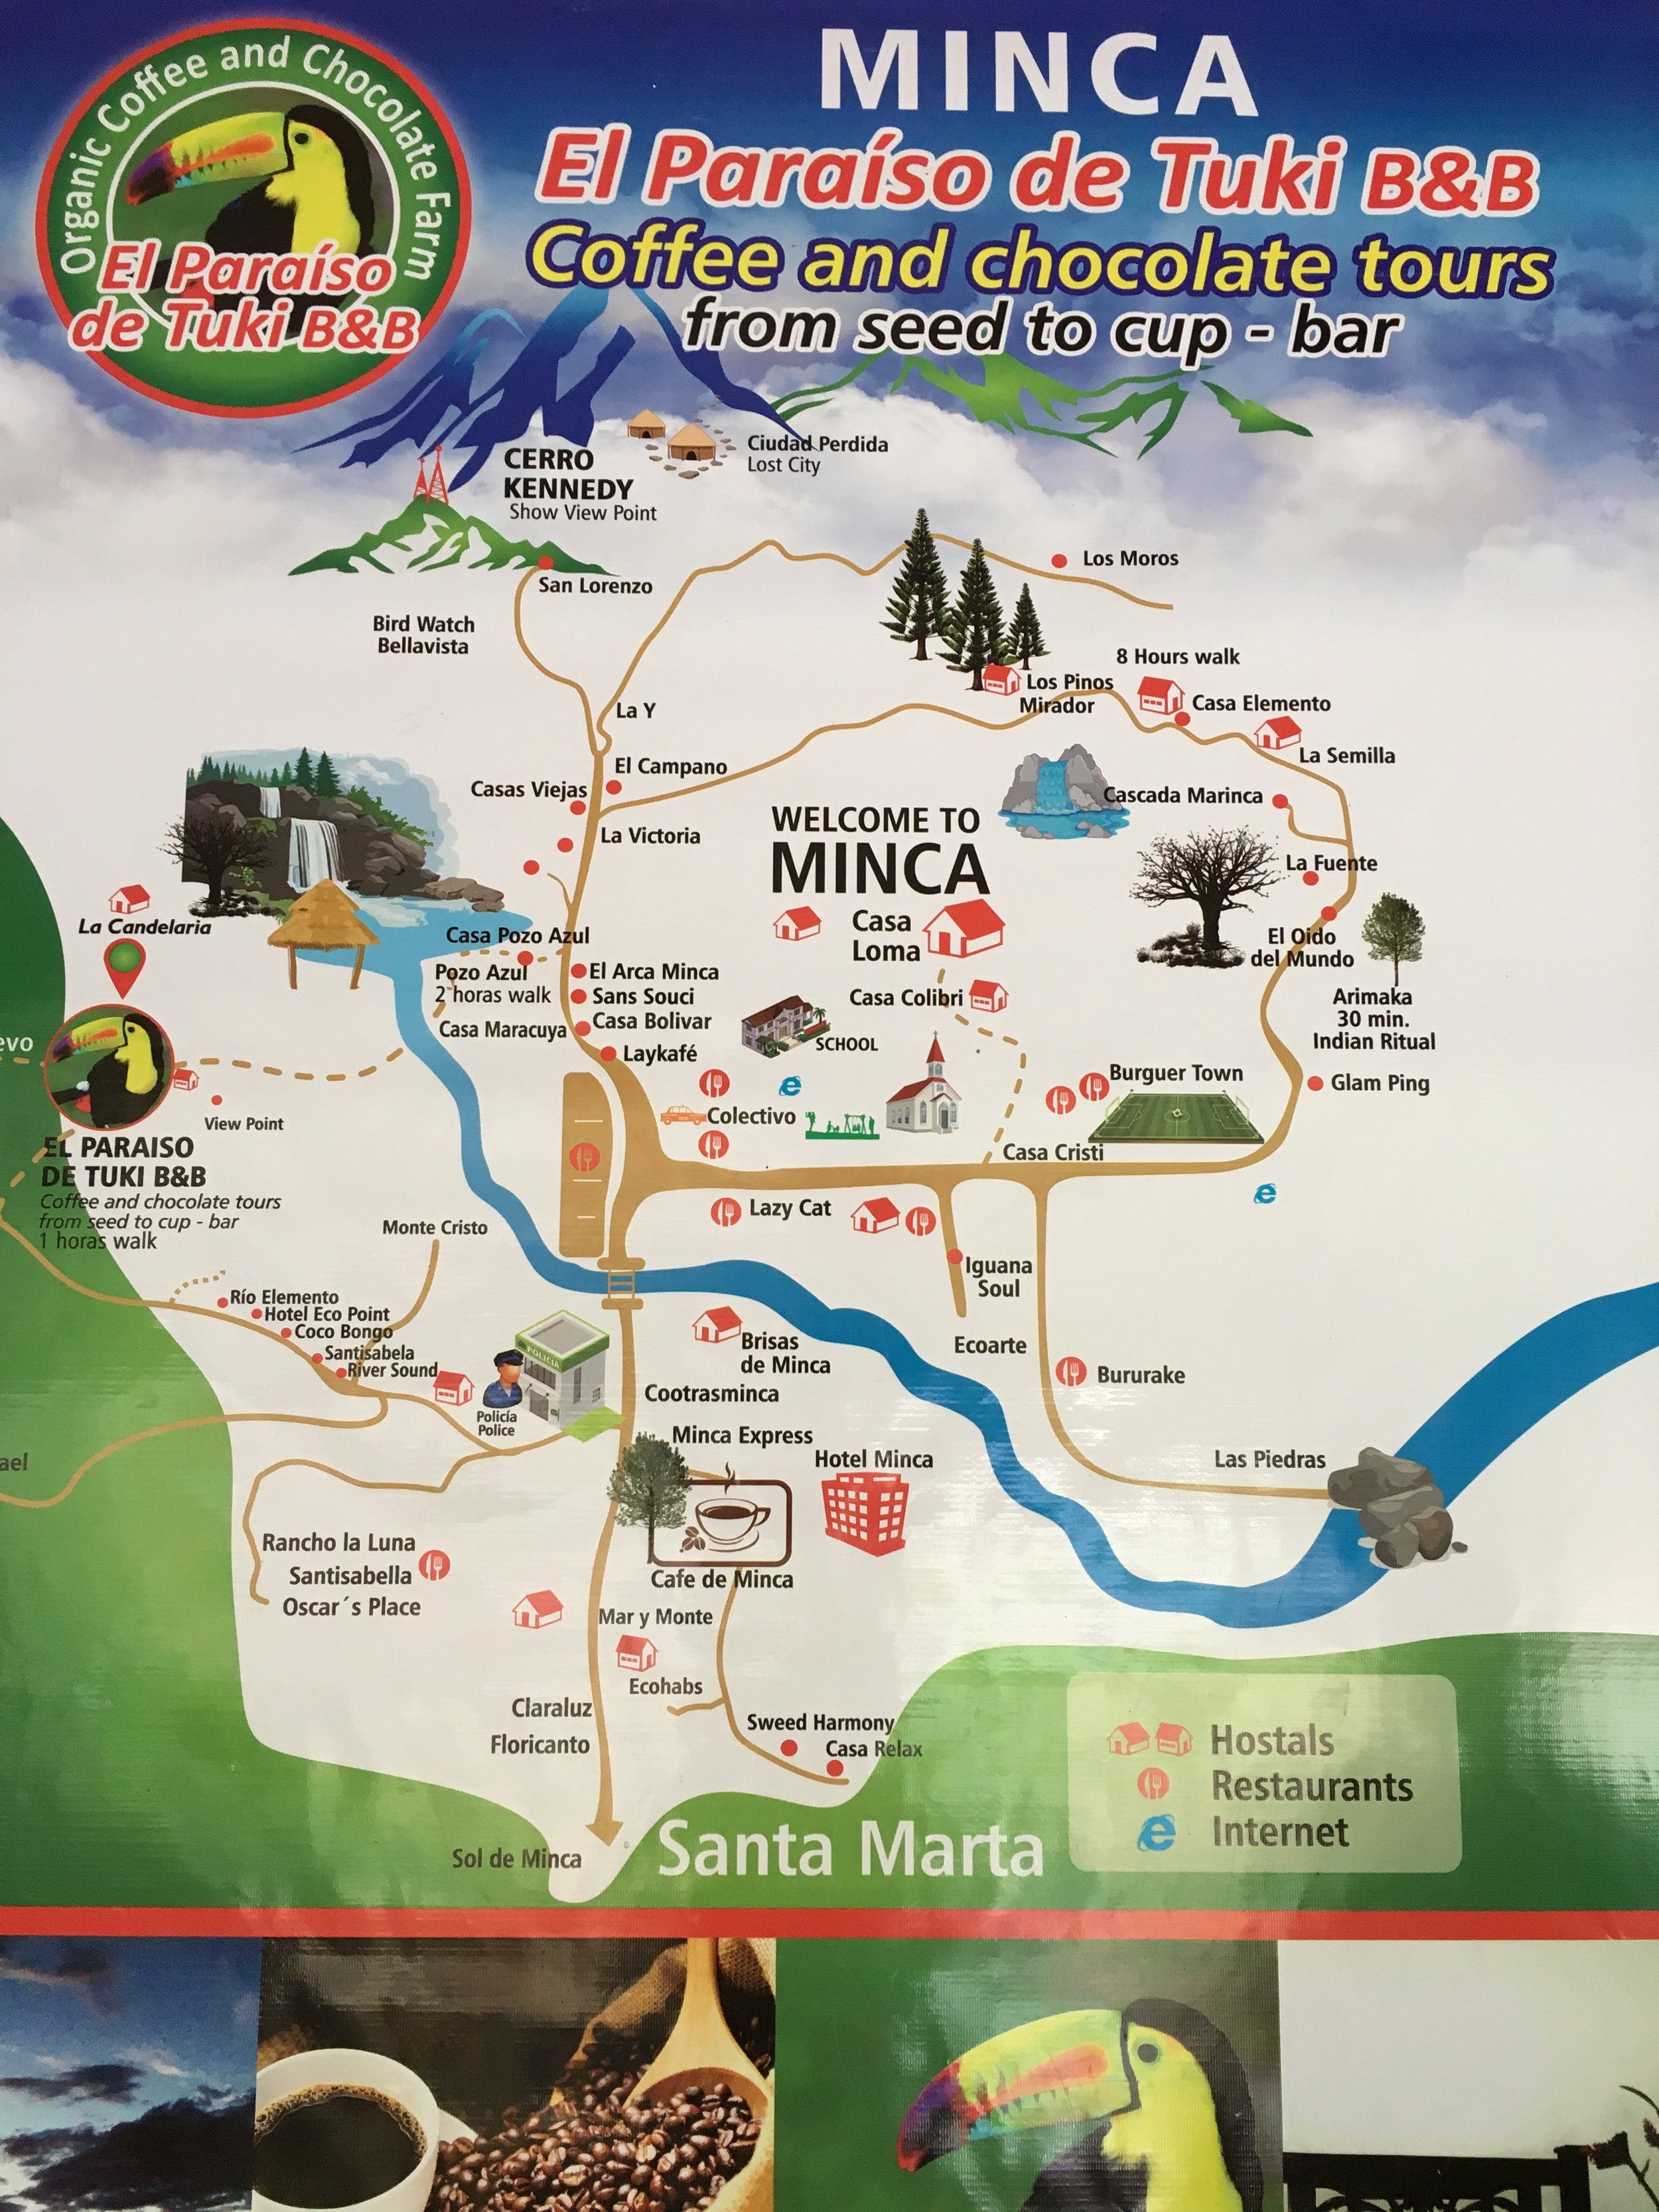 Map of Minca (not to scale)